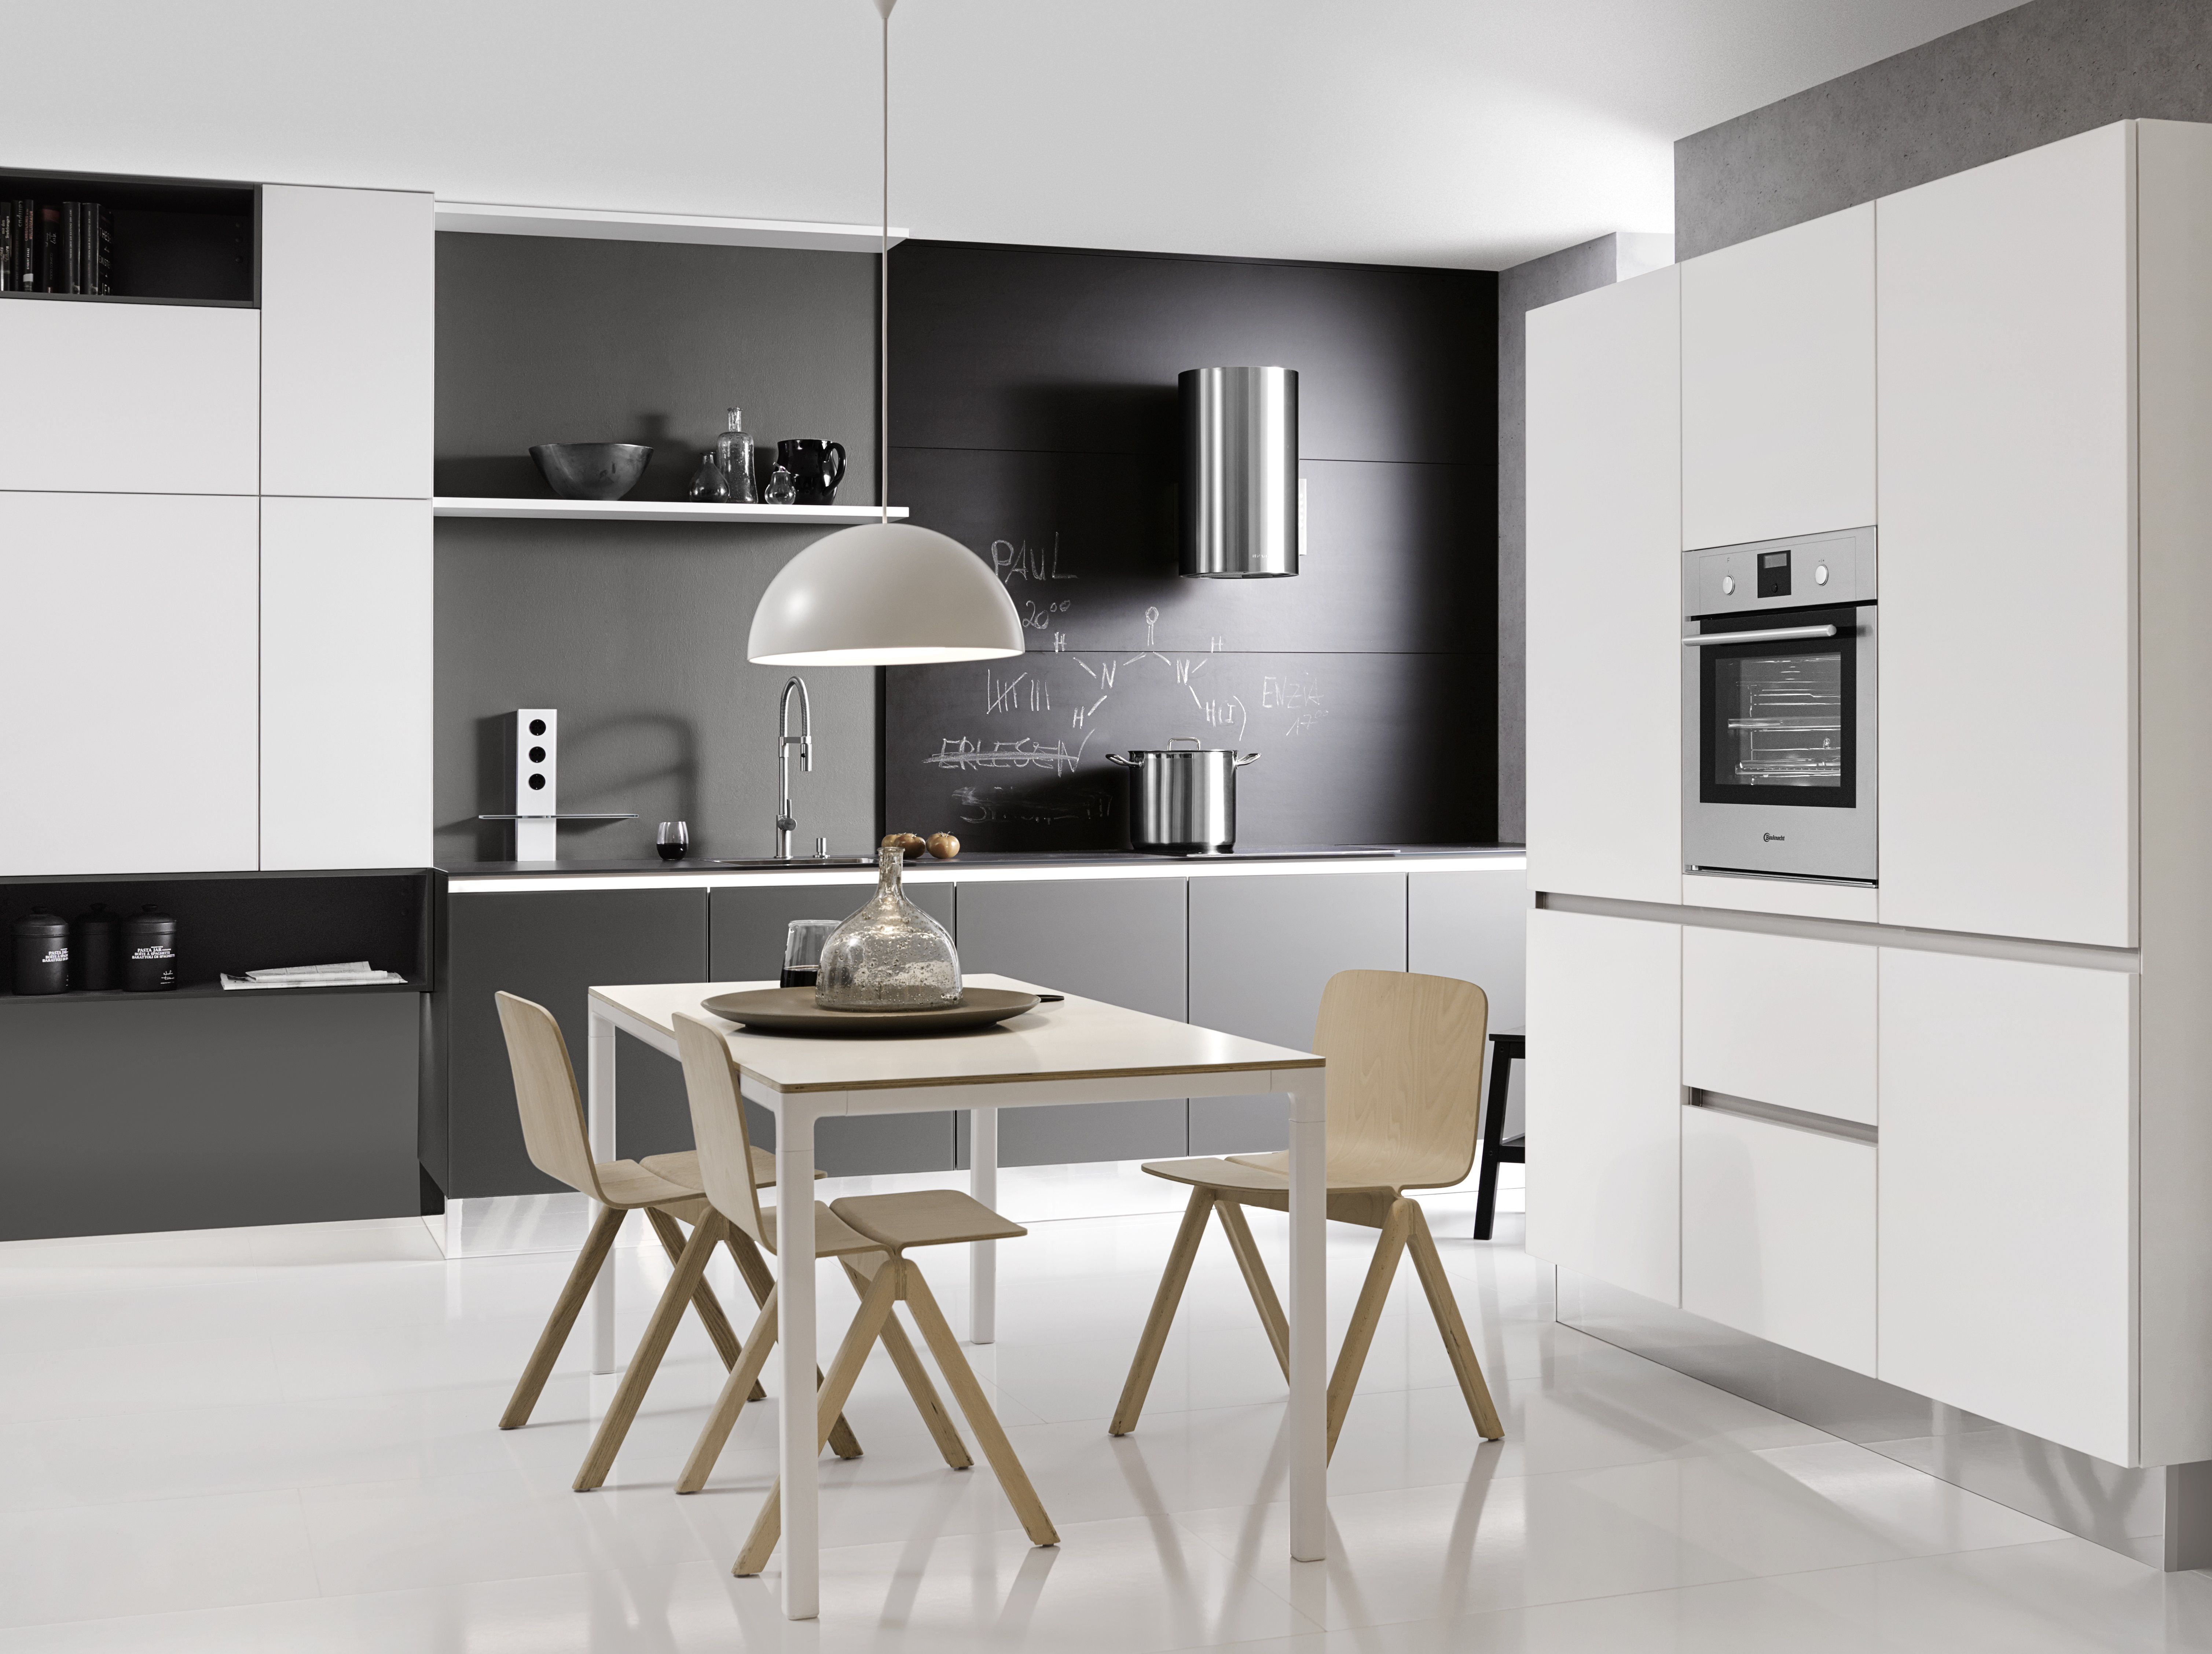 glas tec satin kitchen inspiration ideas modern contemporary